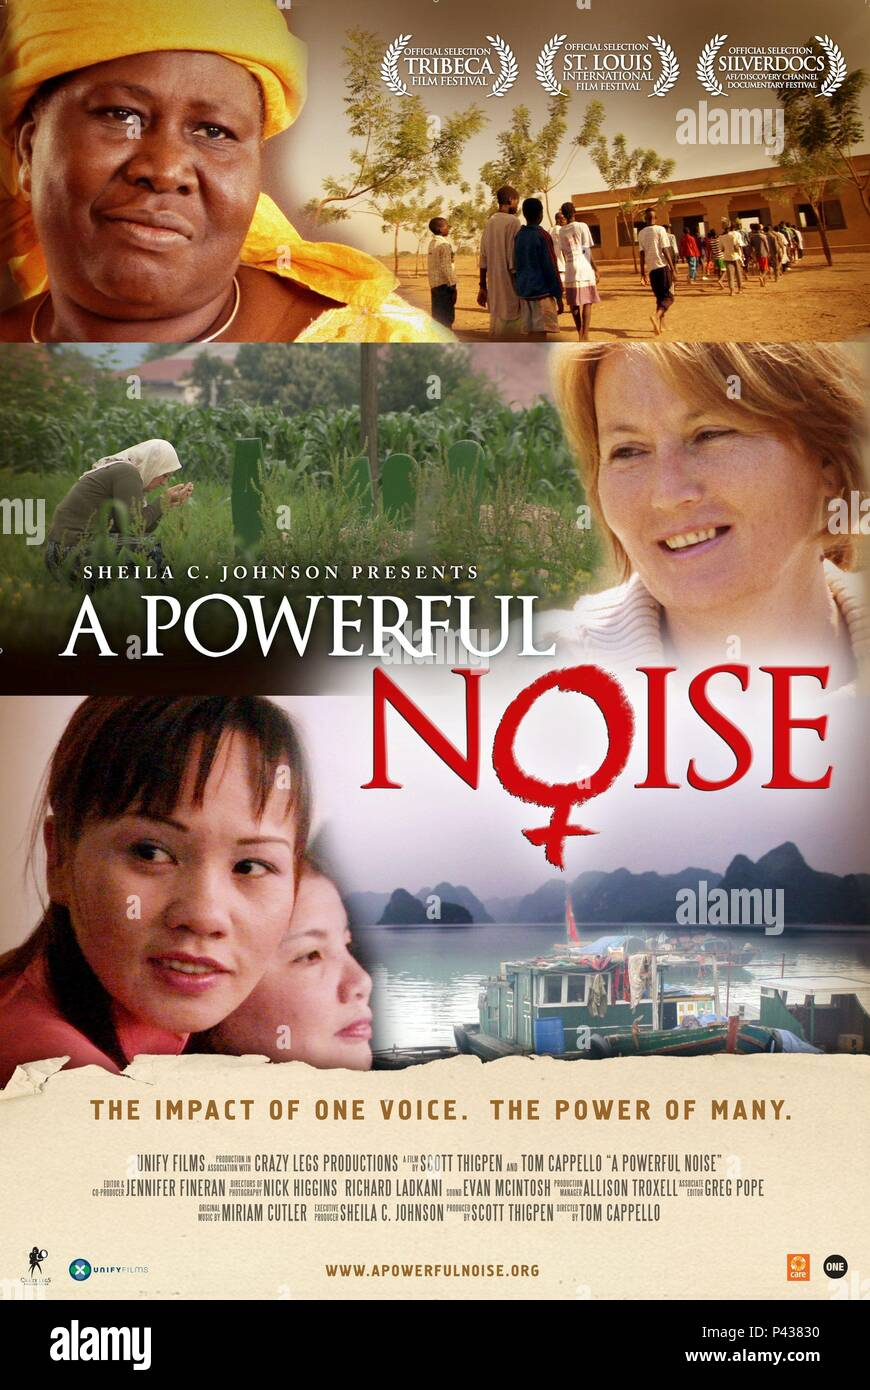 Original Film Title: A POWERFUL NOISE.  English Title: A POWERFUL NOISE.  Film Director: TOM CAPPELLO.  Year: 2008. Credit: UNIFY FILMS / Album - Stock Image